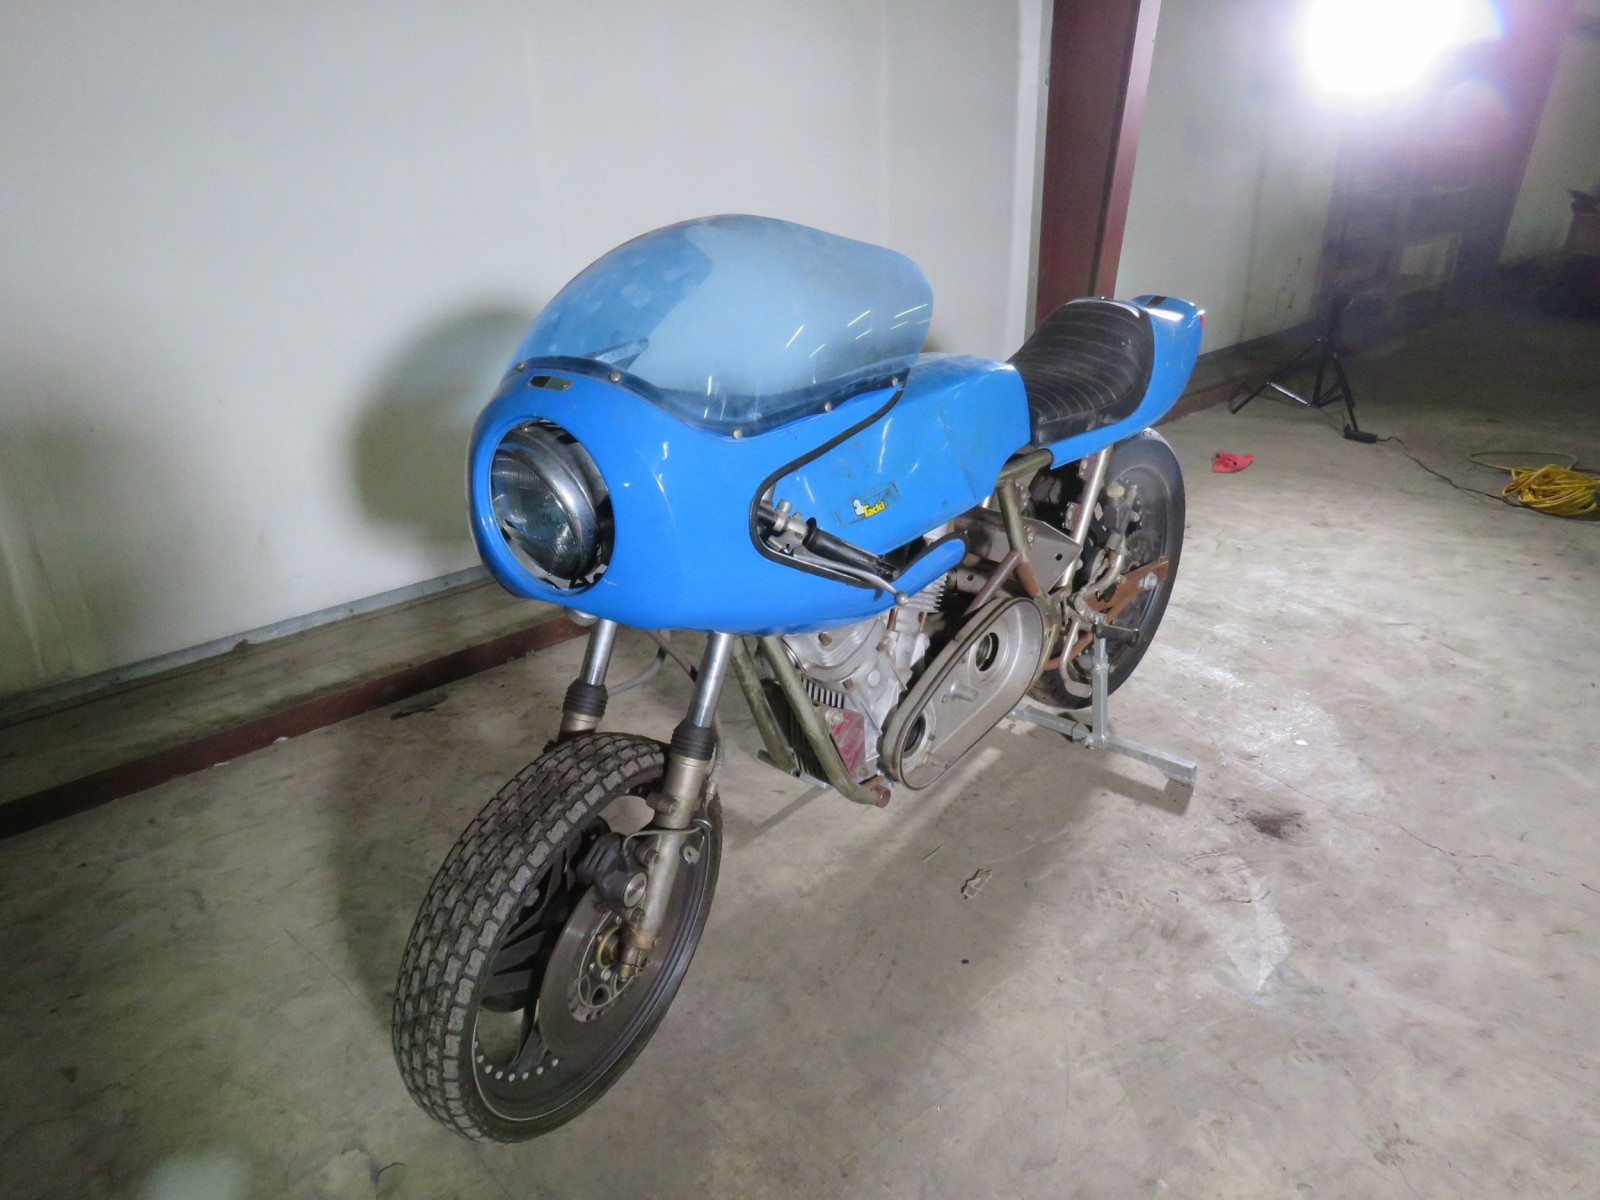 Homemade Mystery Motorcycle - Image 4